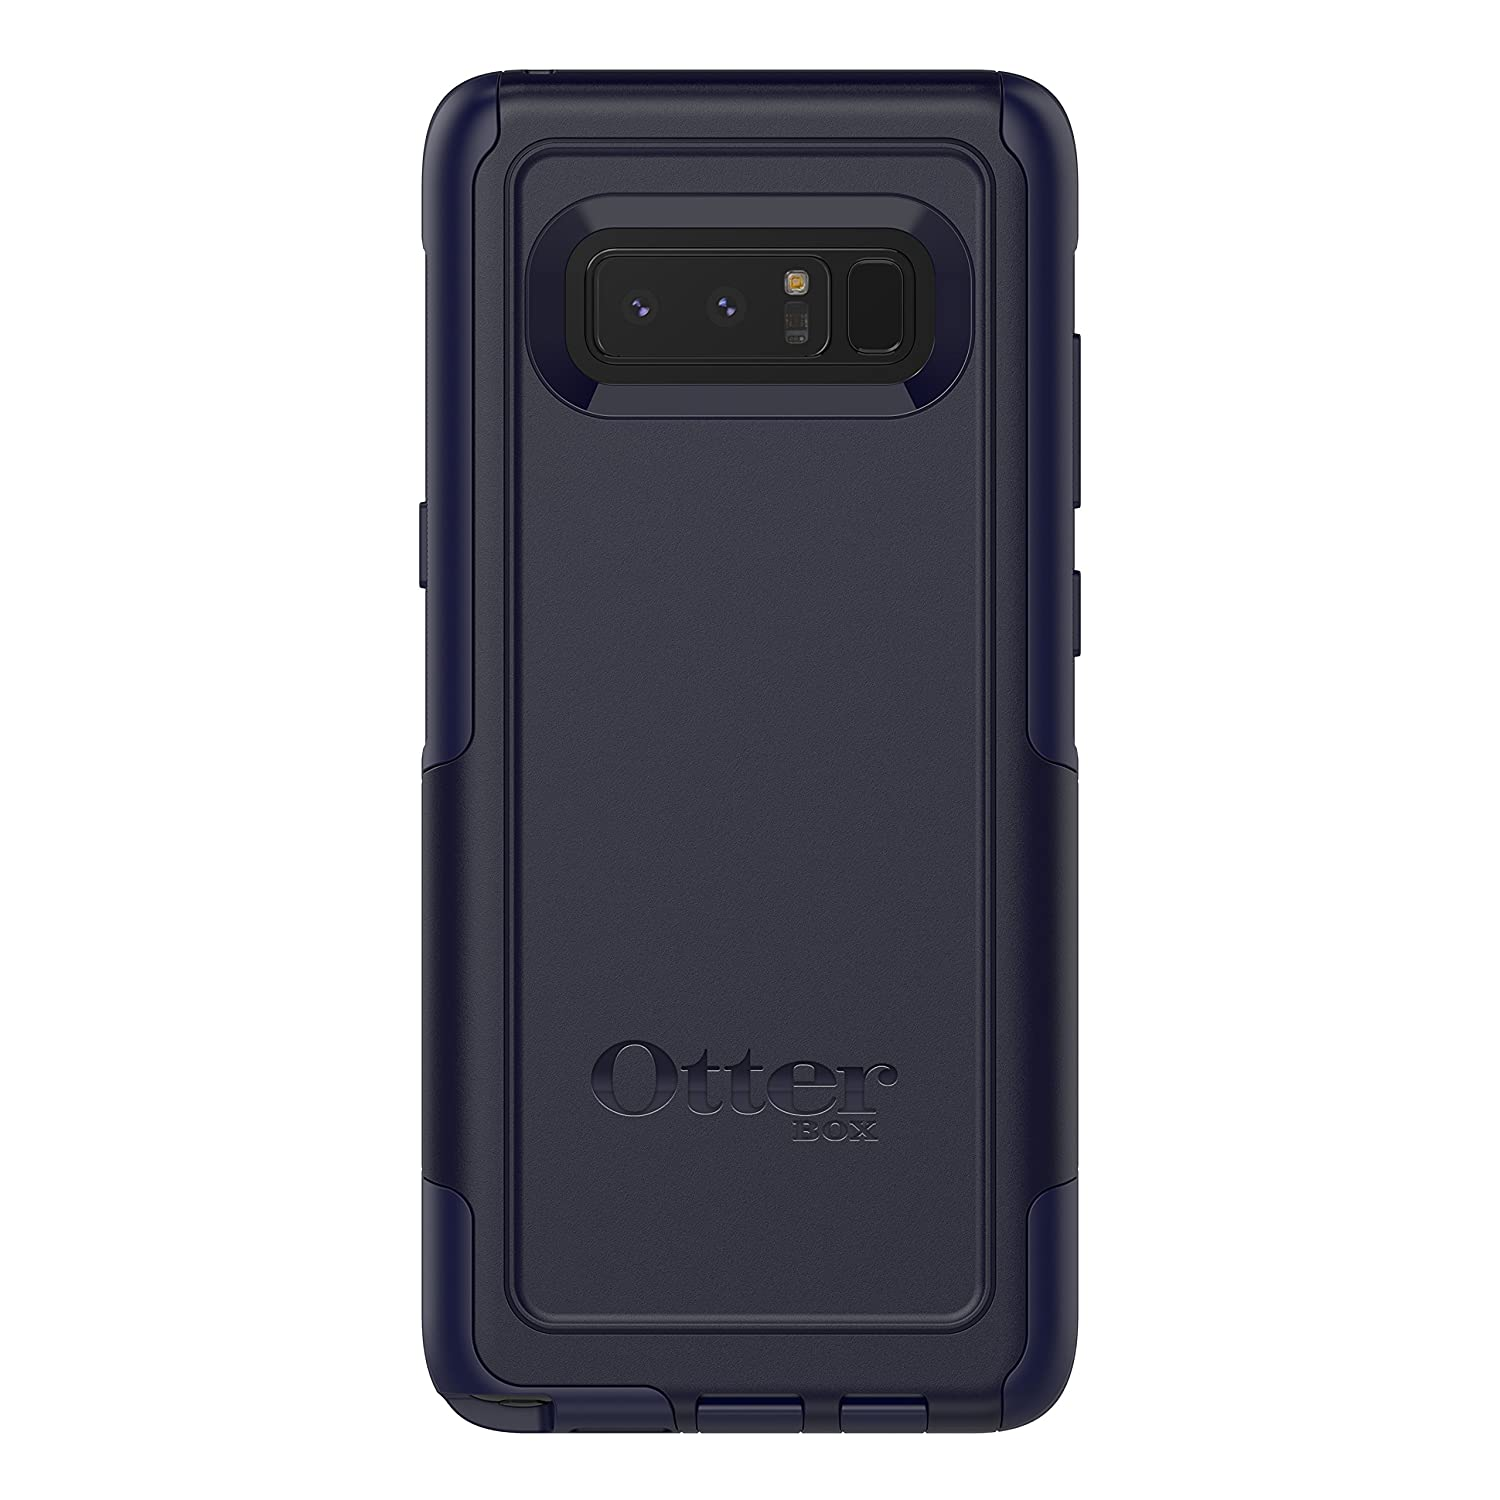 OtterBox COMMUTER SERIES Case for Samsung Galaxy Note8 - Retail Packaging - INDIGO WAY (MARITIME BLUE/ADMIRAL BLUE)